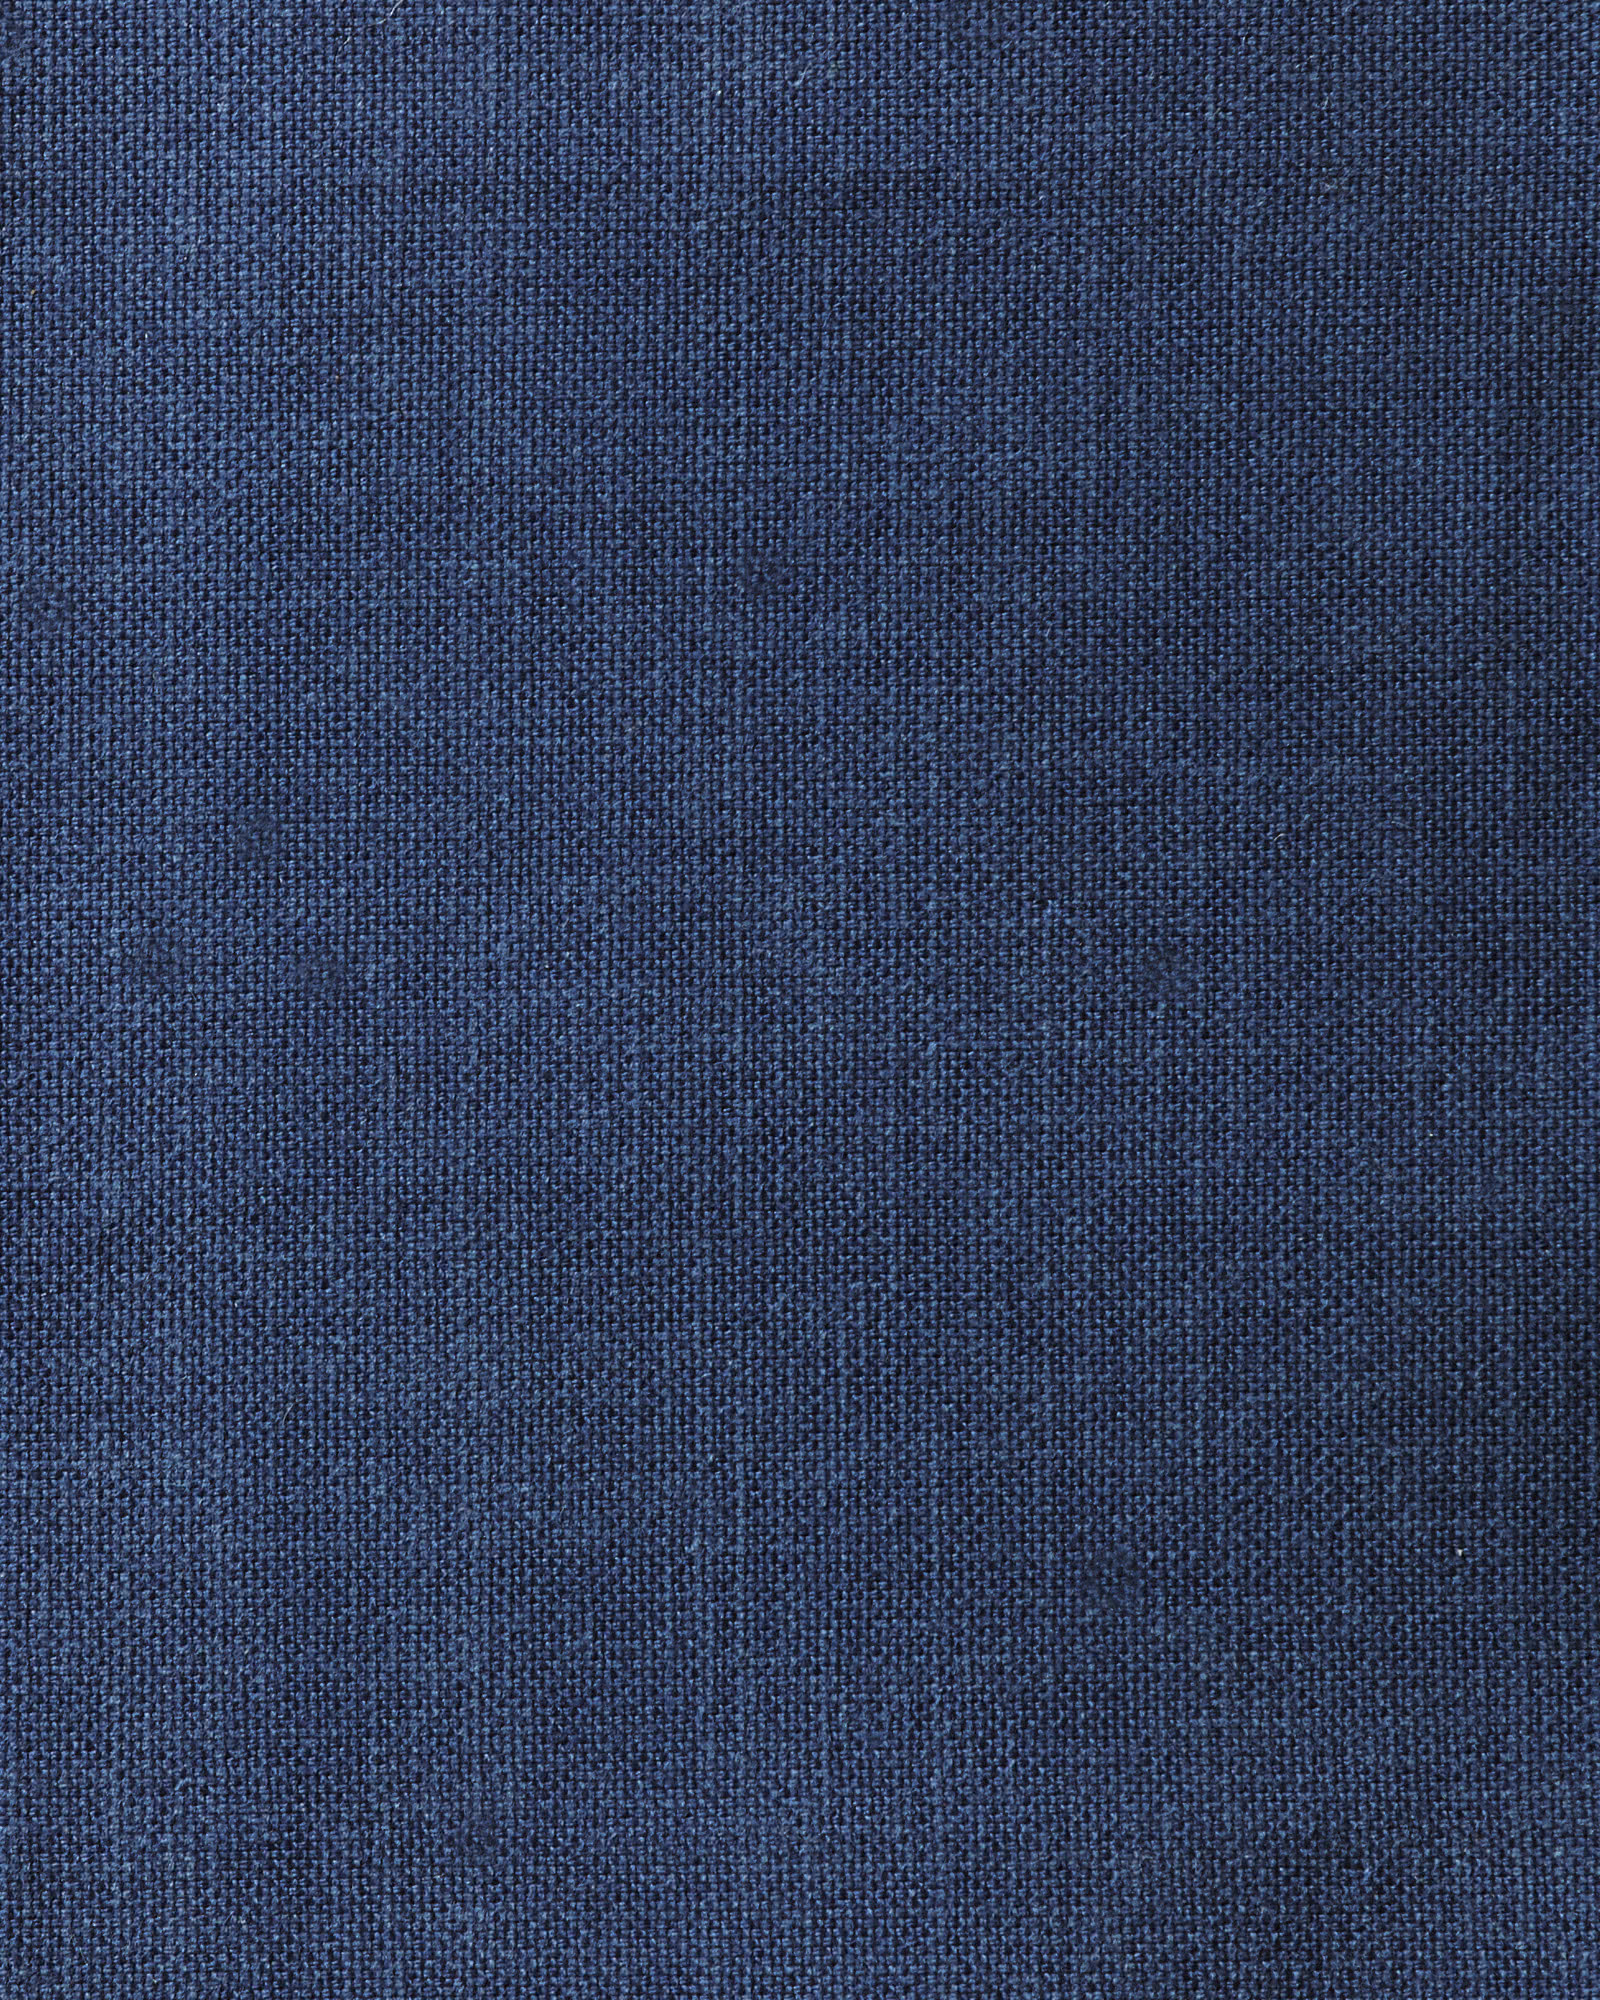 Brushed Cotton Canvas  Denim  Serena  Lily